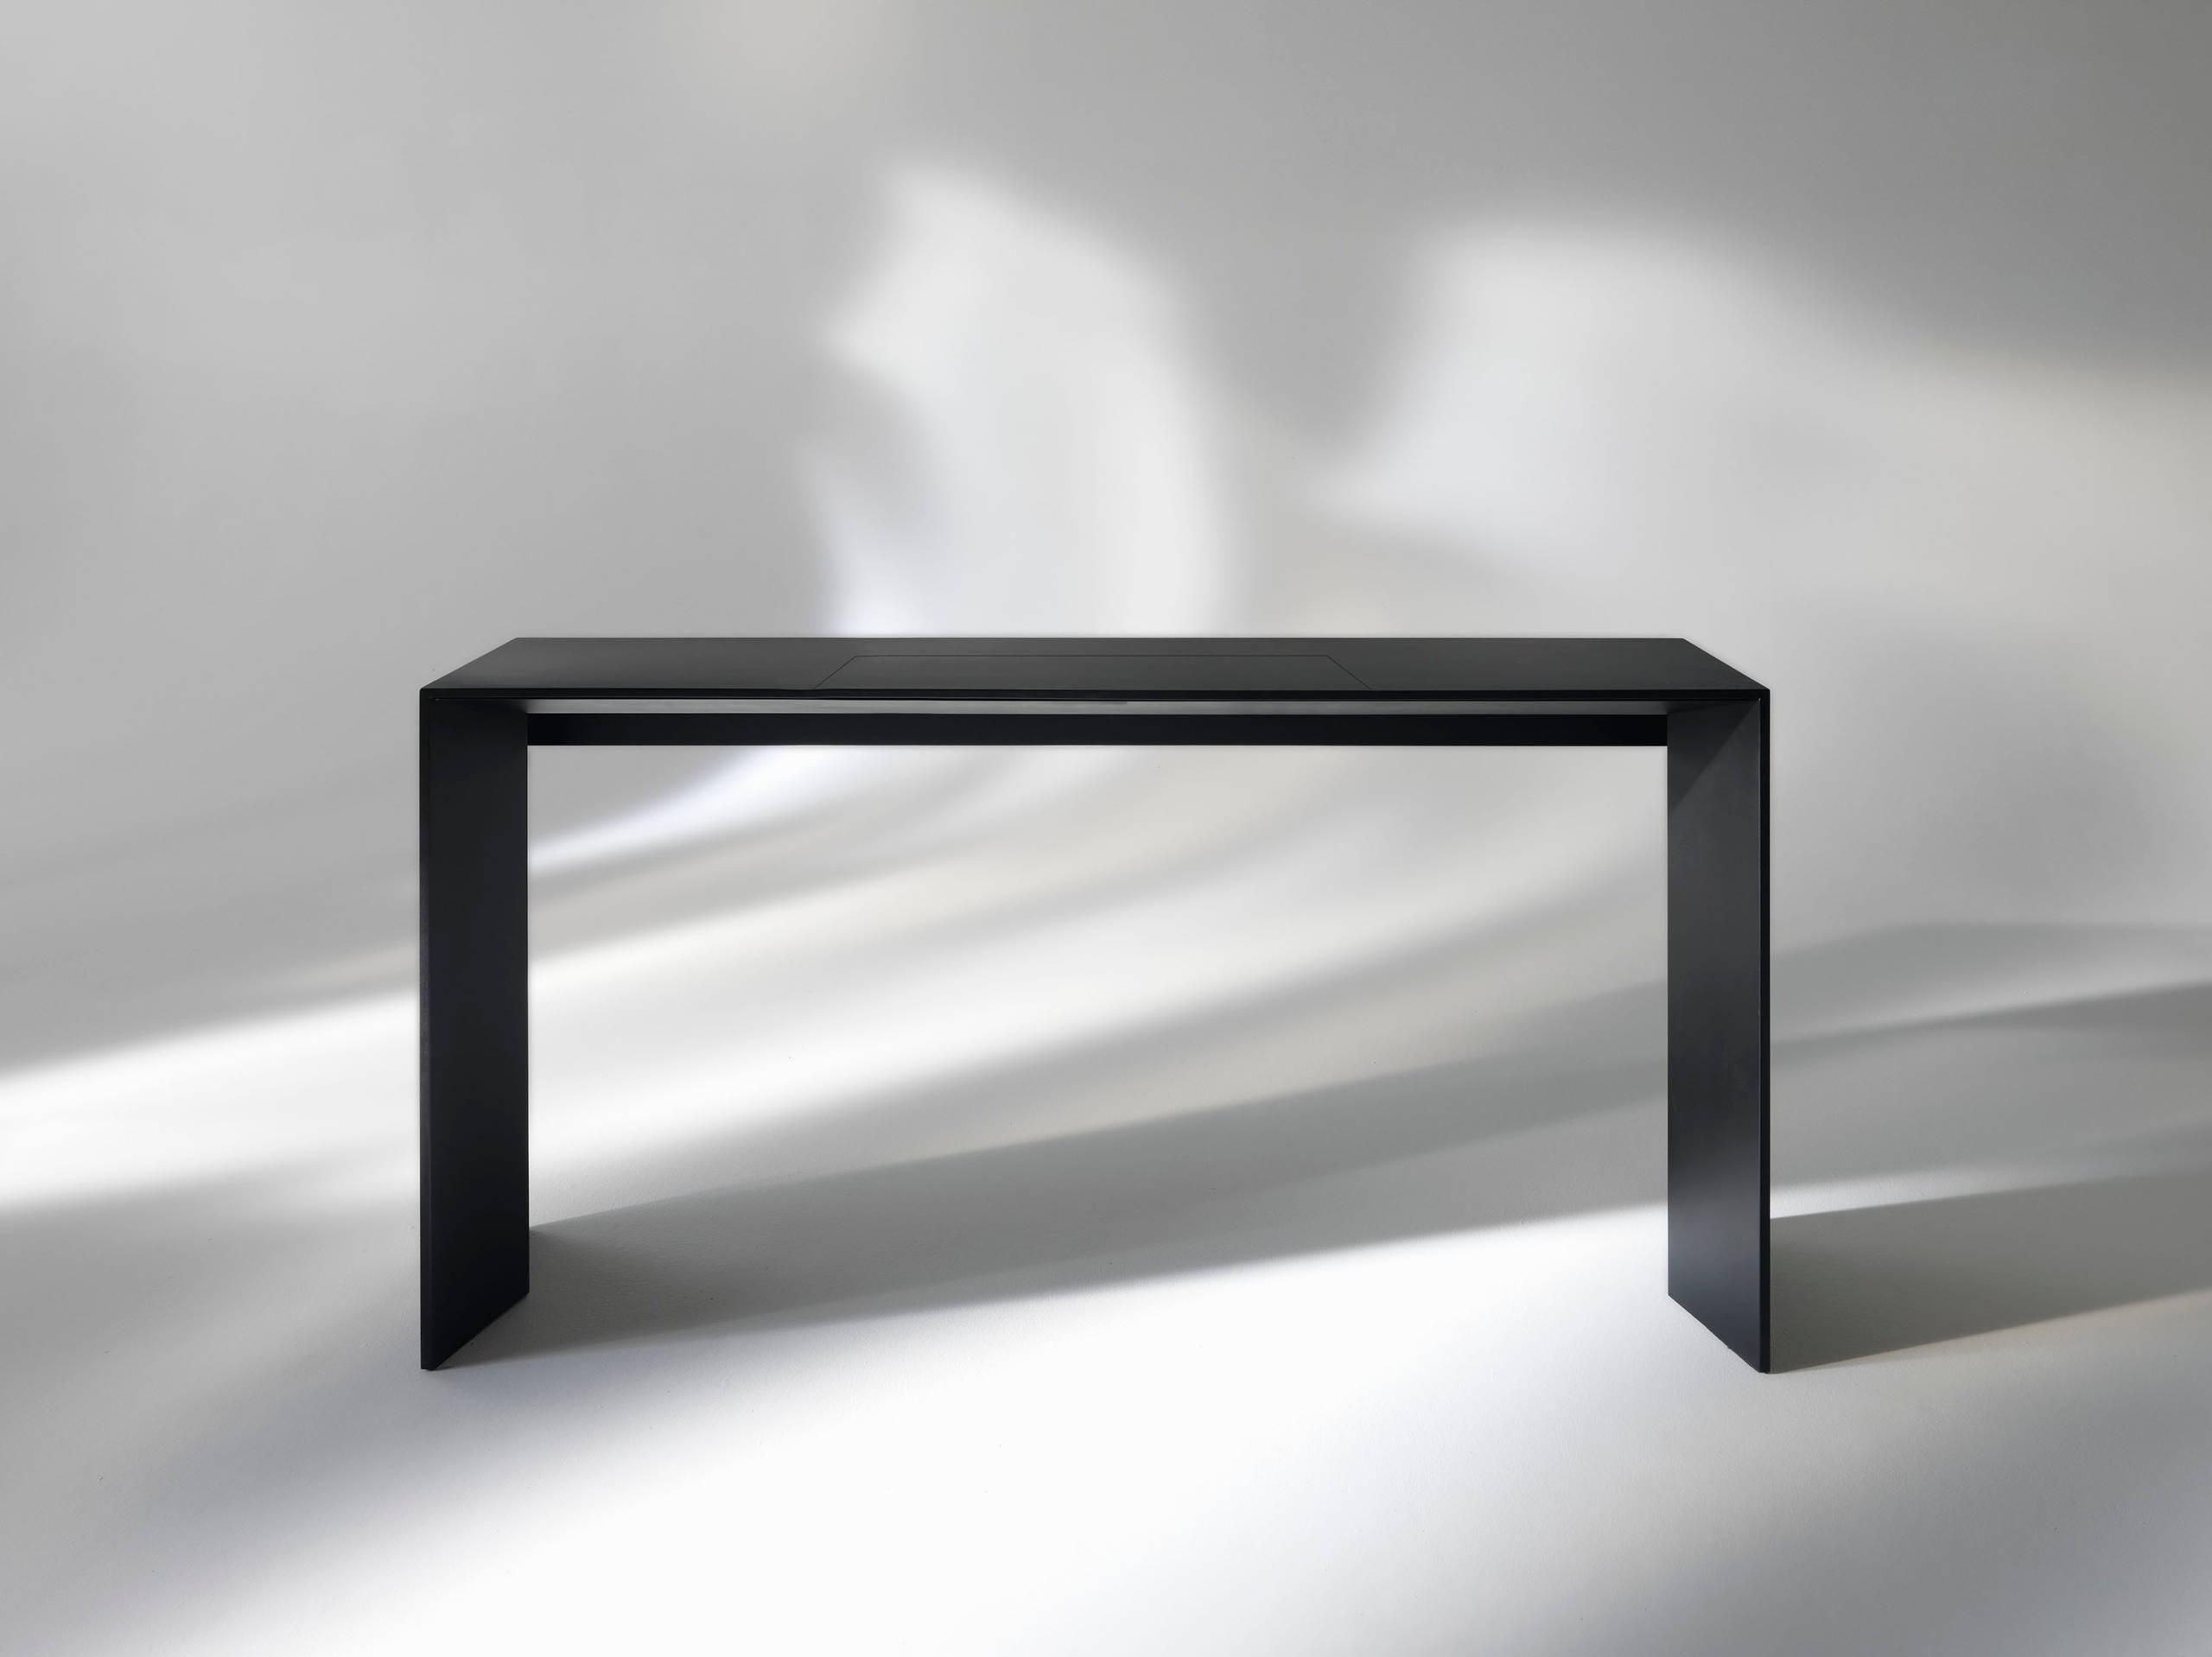 PRAIA_DESK Desk by albedo Design